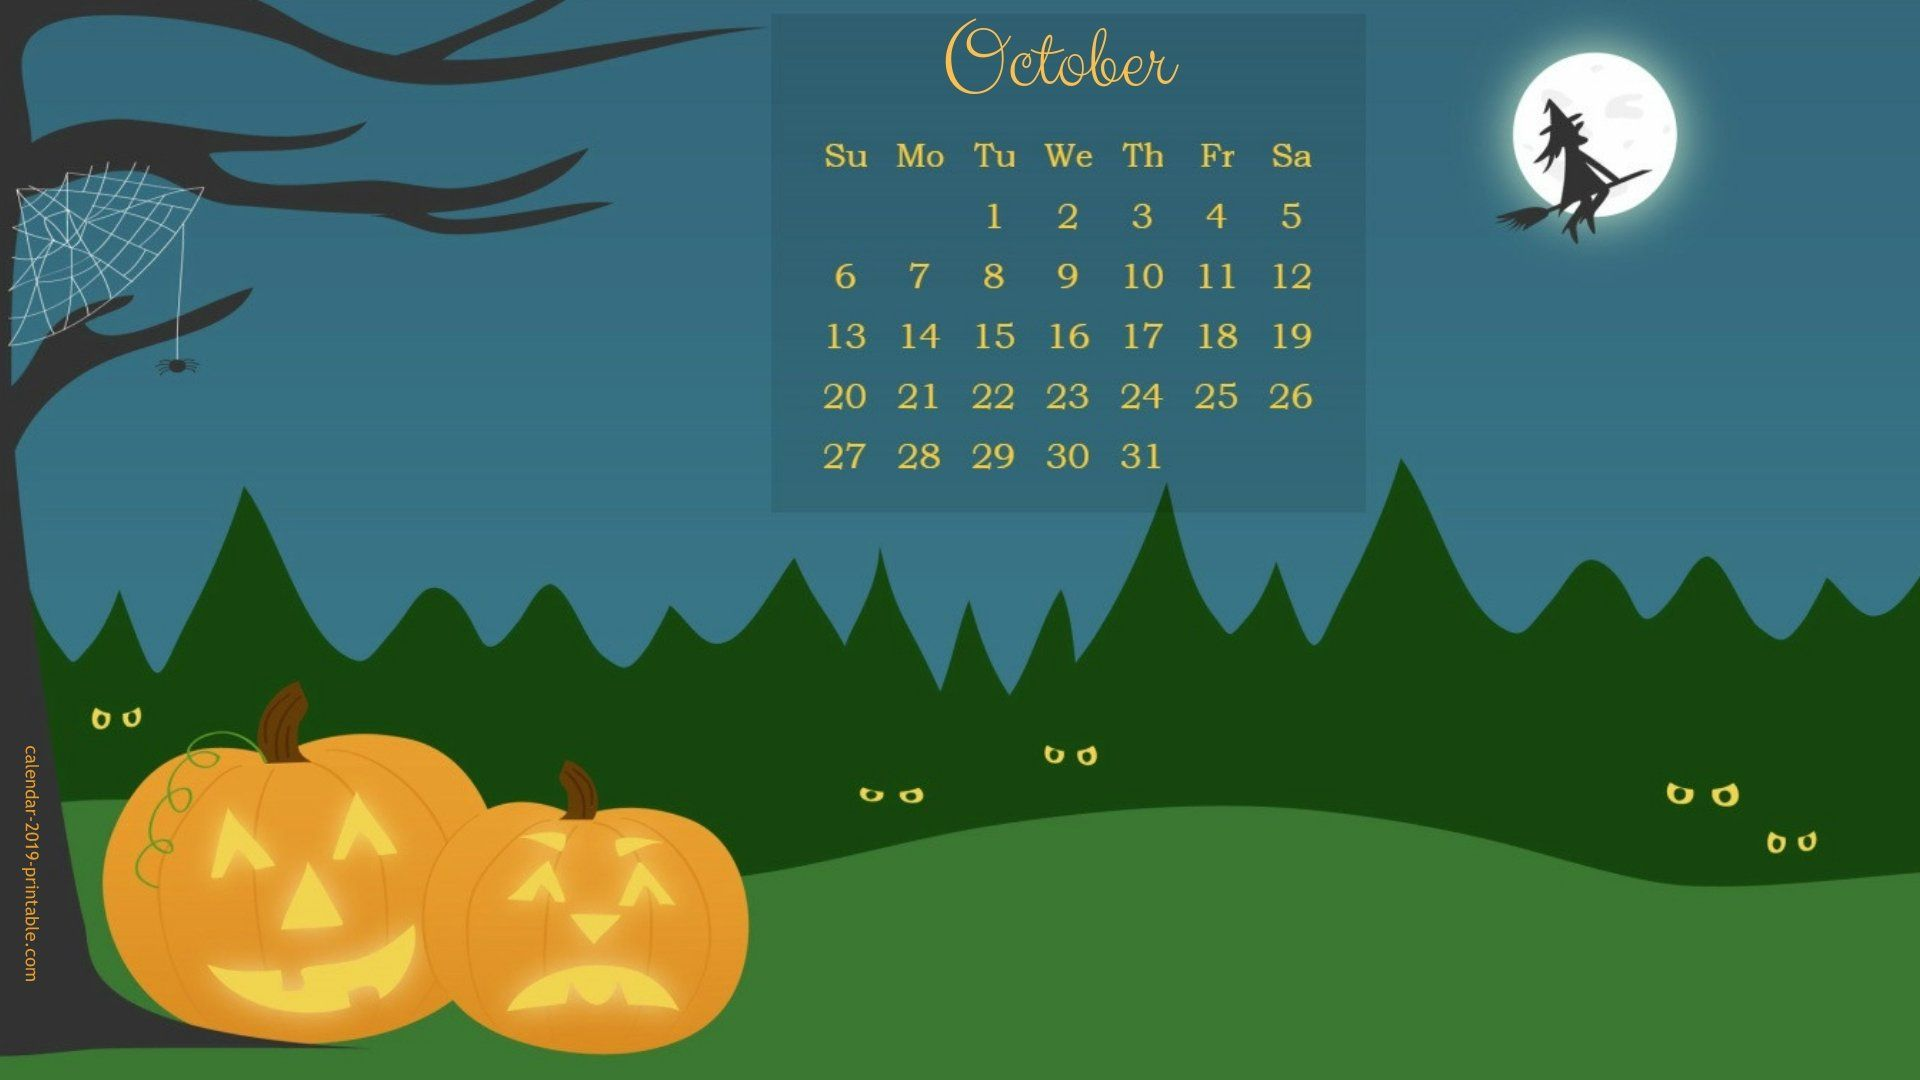 october 2019 calendar halloween wallpaper | Calendar 2019 ...